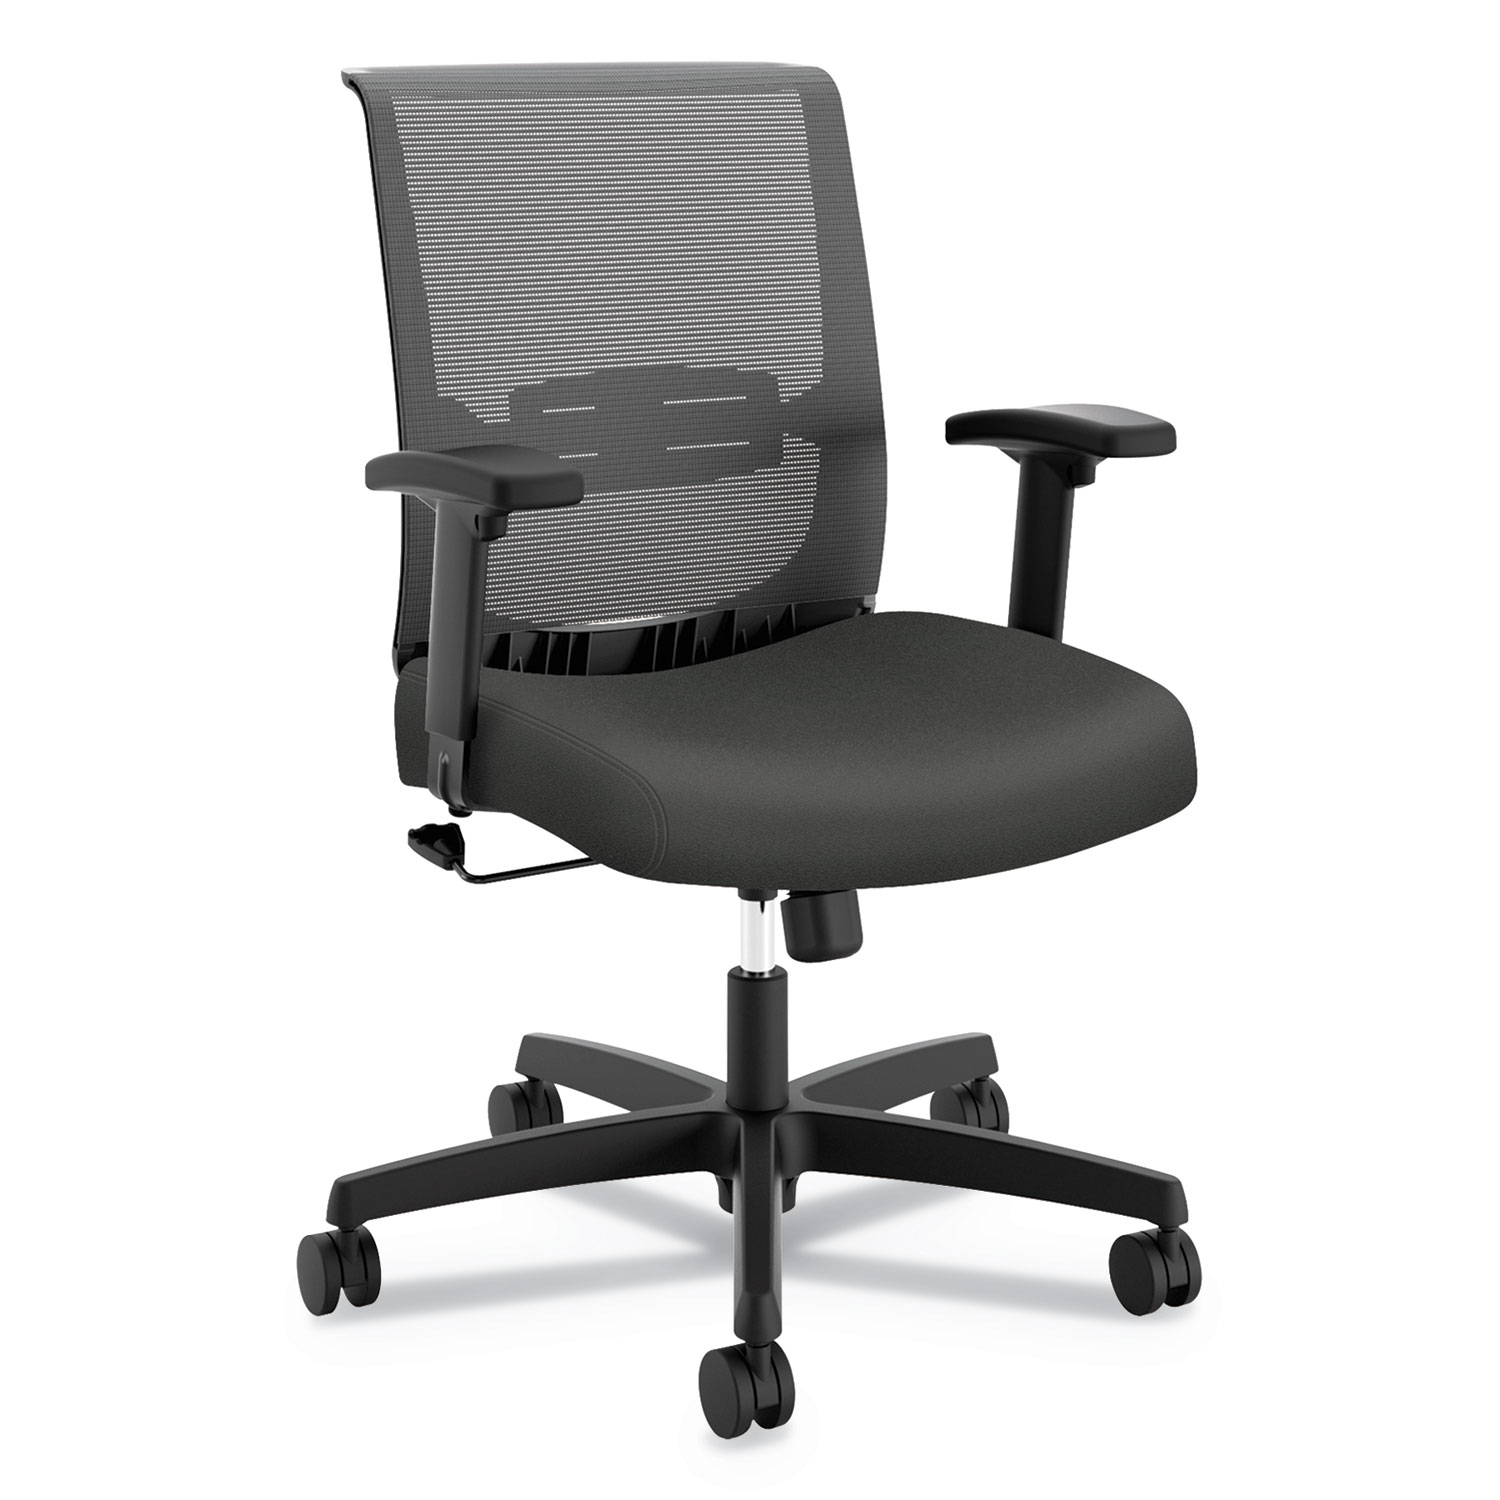 Convergence Mid-Back Task Chair with Swivel-Tilt Control, Supports up to 275 lbs, Iron Ore Seat, Black Back, Black Base